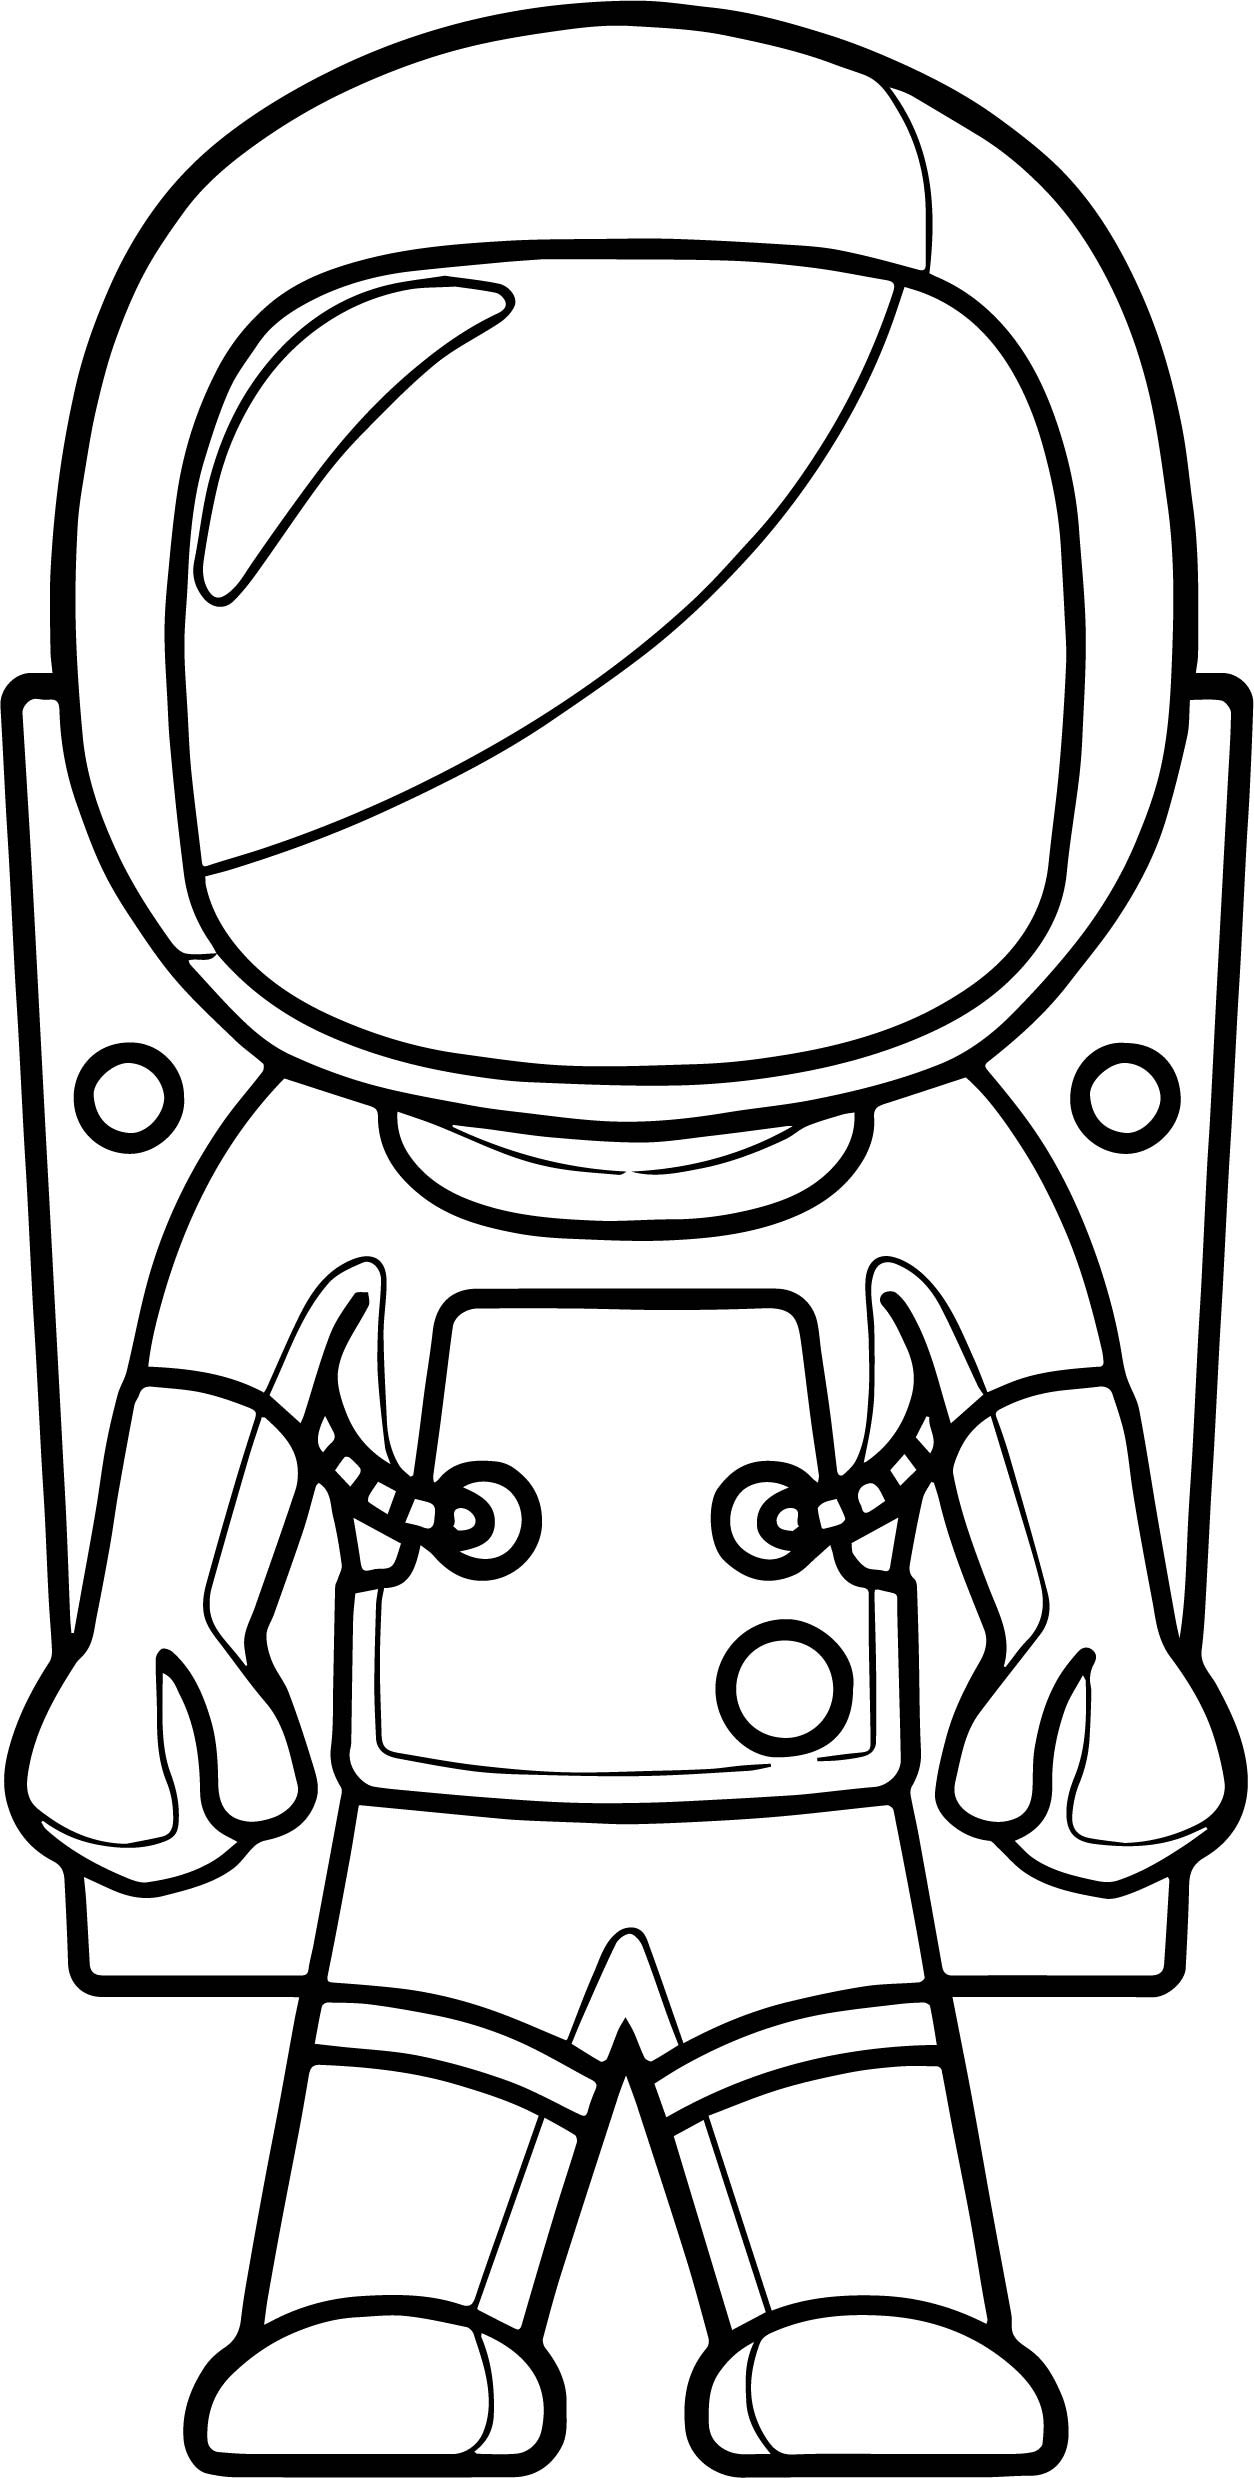 nasa astronaut coloring pages astronaut coloring pages at getdrawings free download coloring nasa pages astronaut